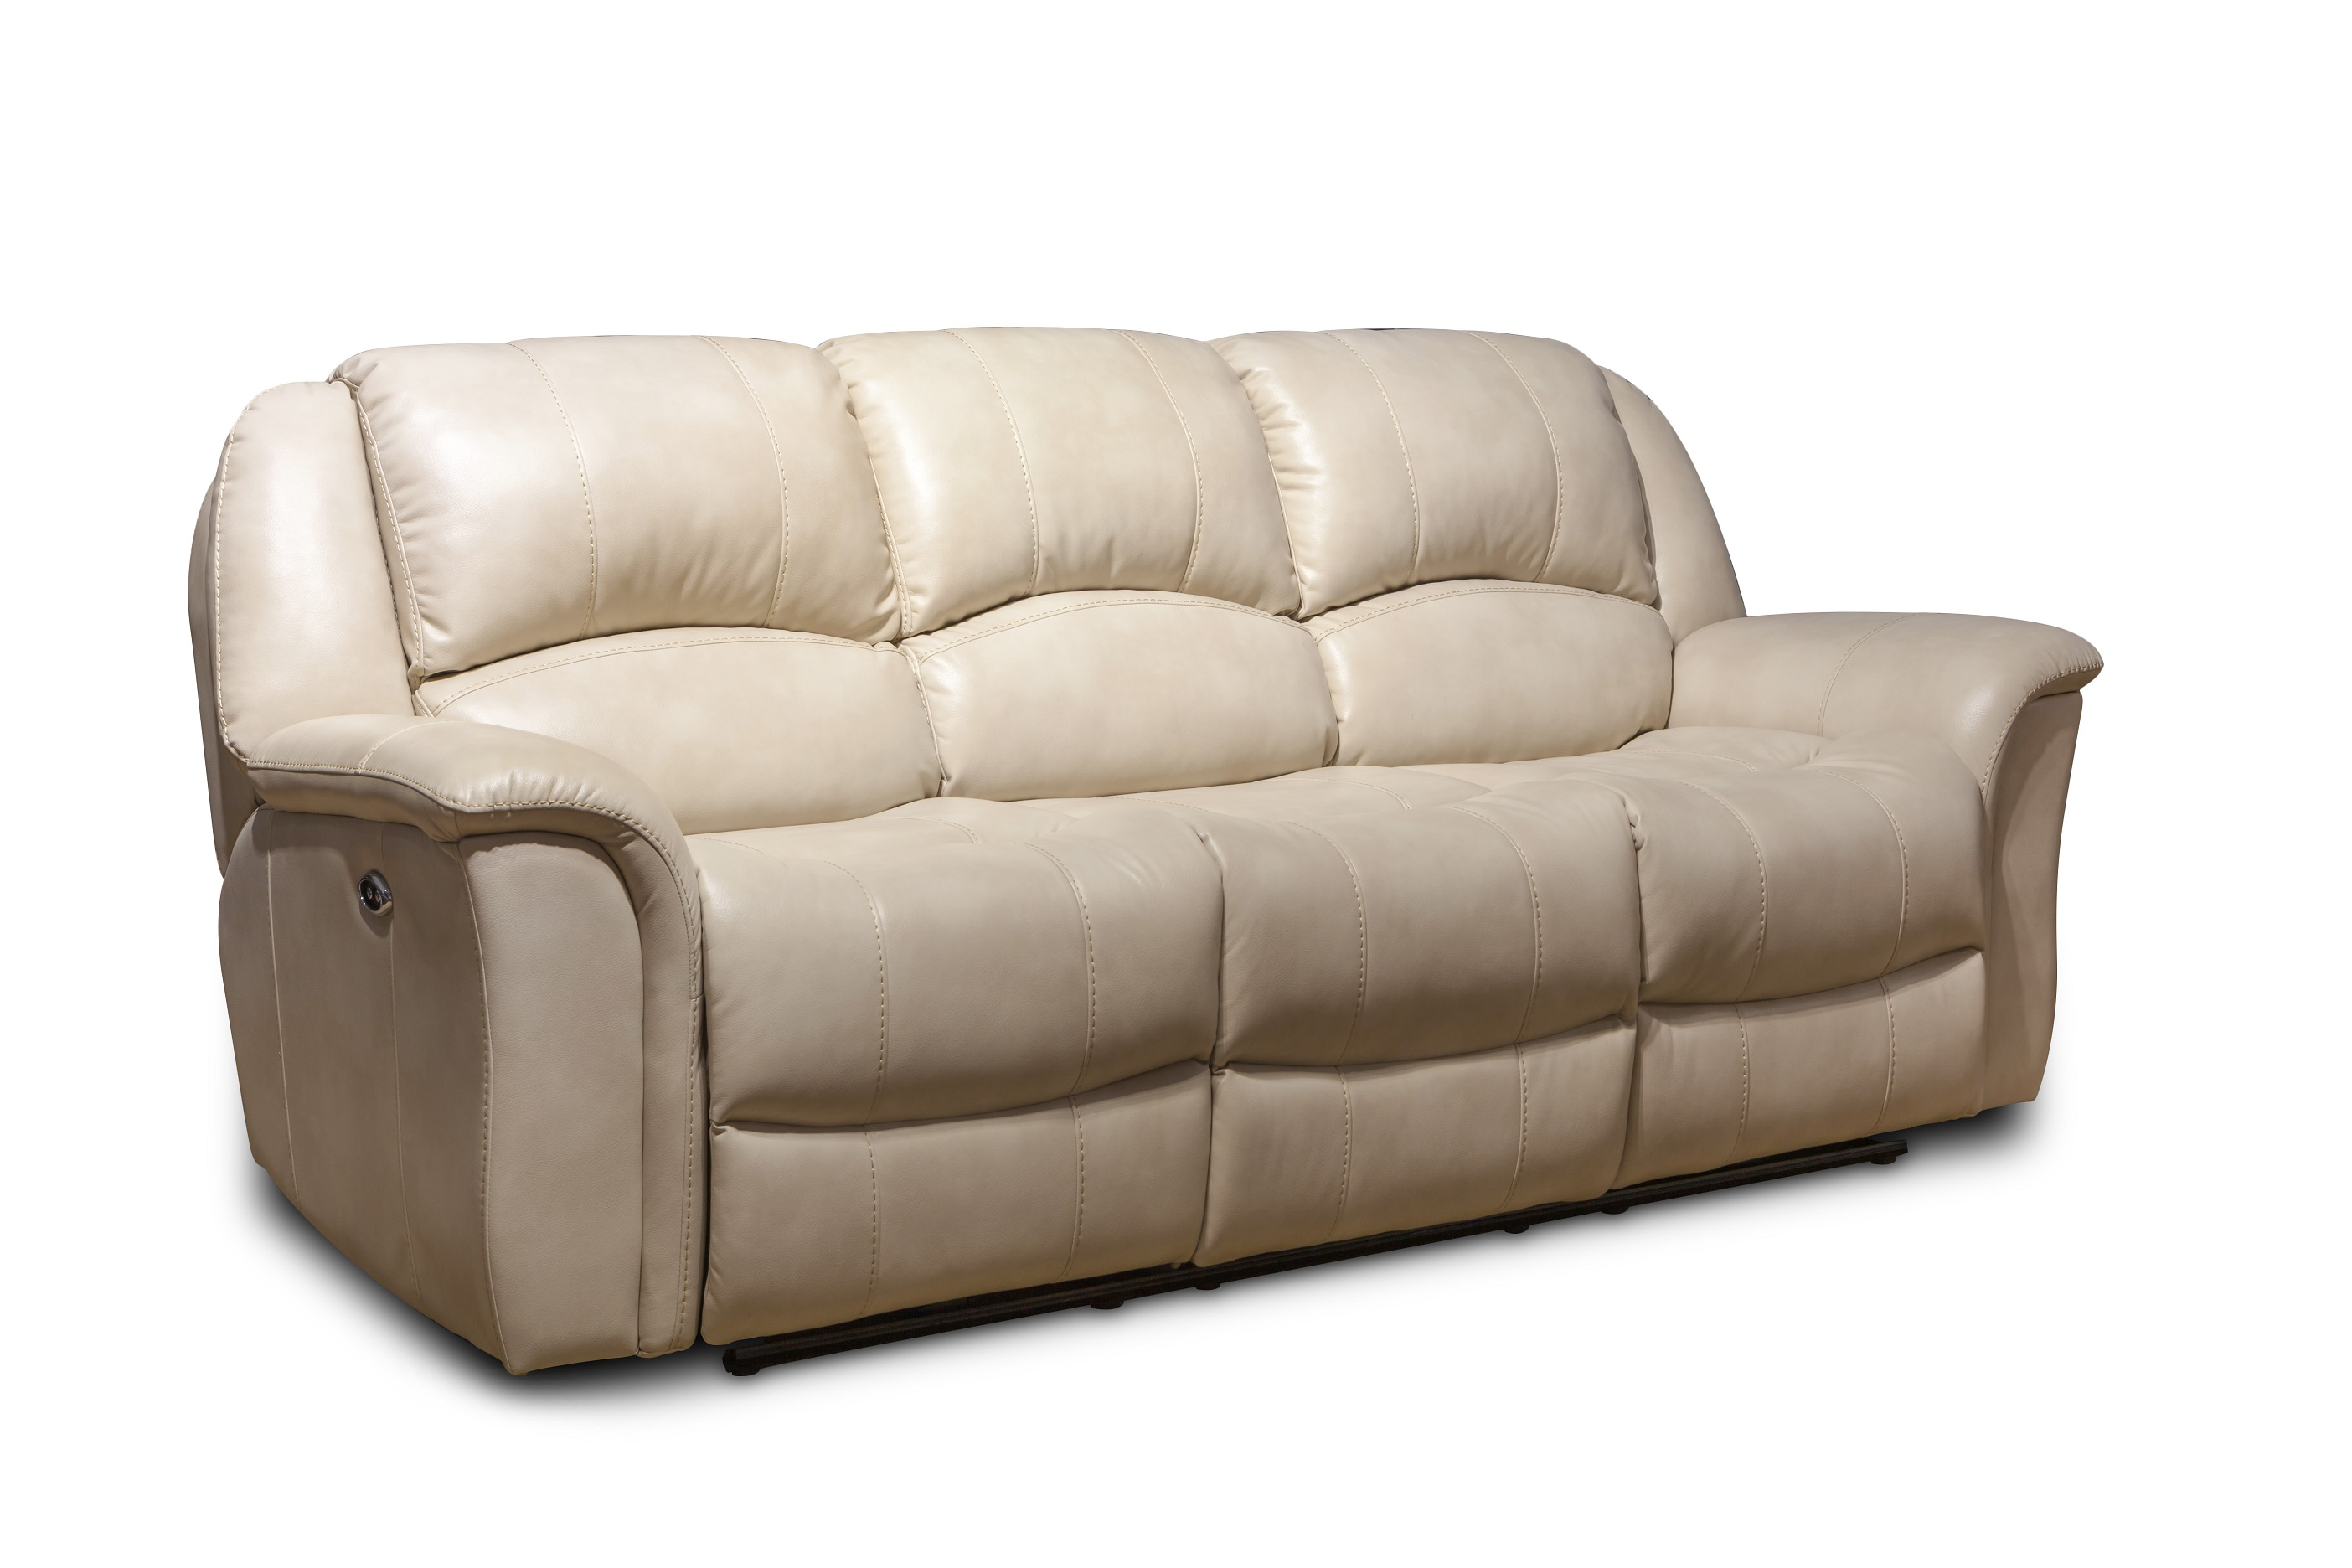 Modern simple style beige electric leather sofa recliner